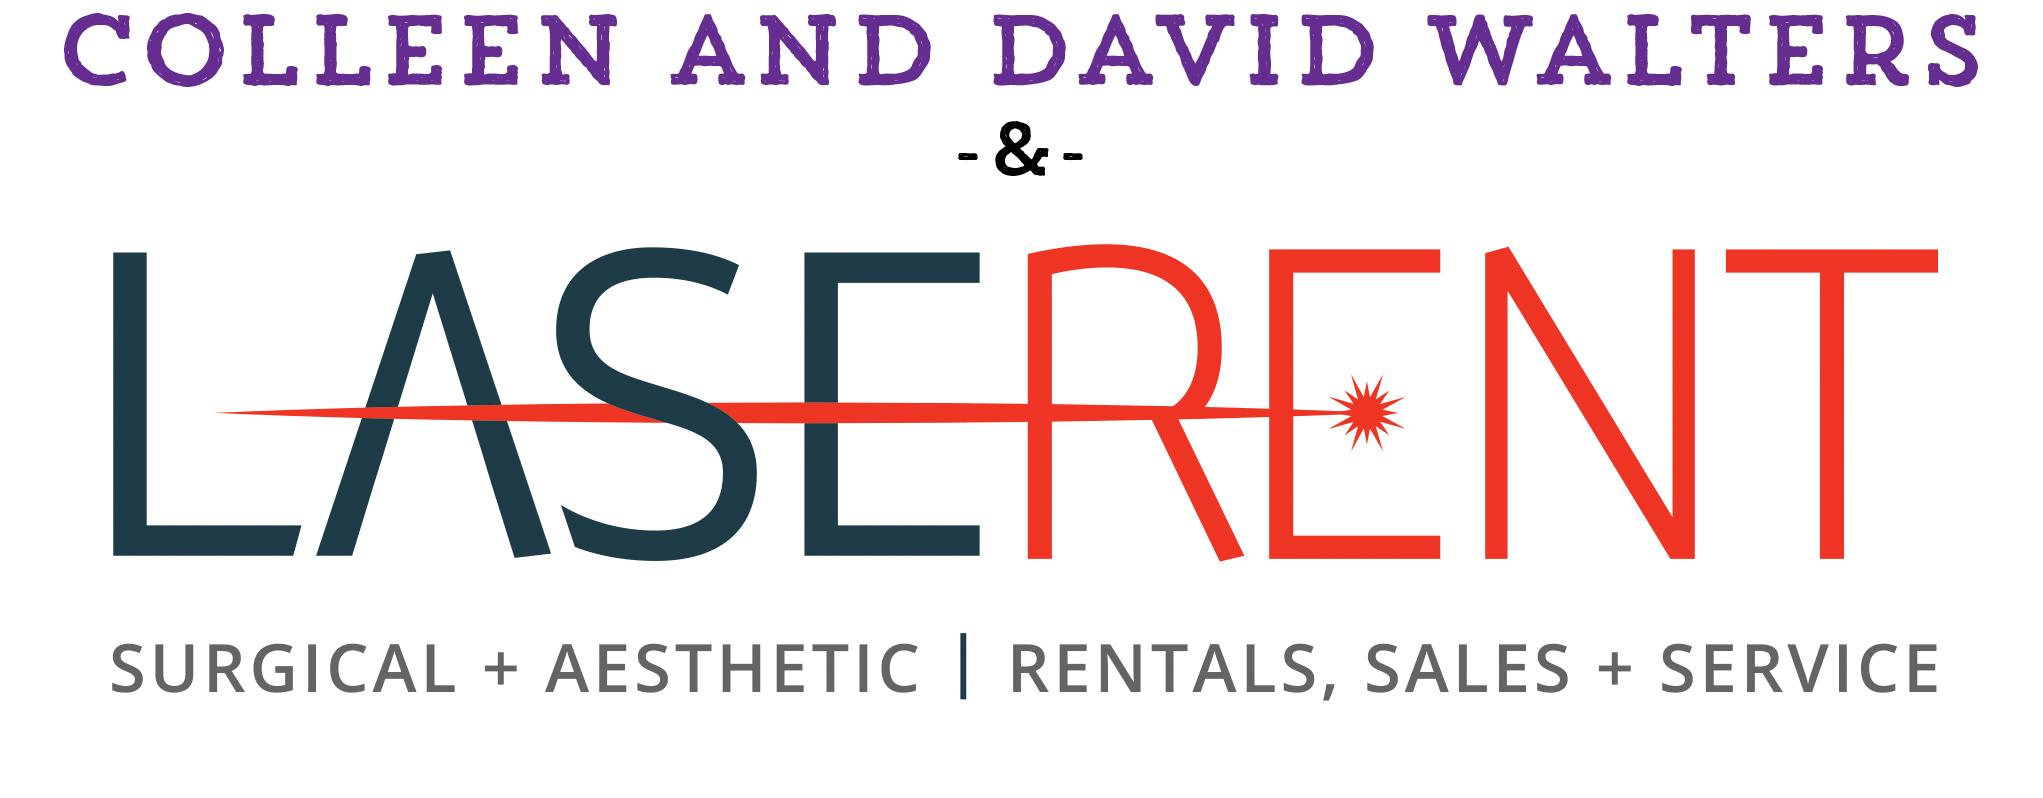 Colleen and David Walters LaseRent logo